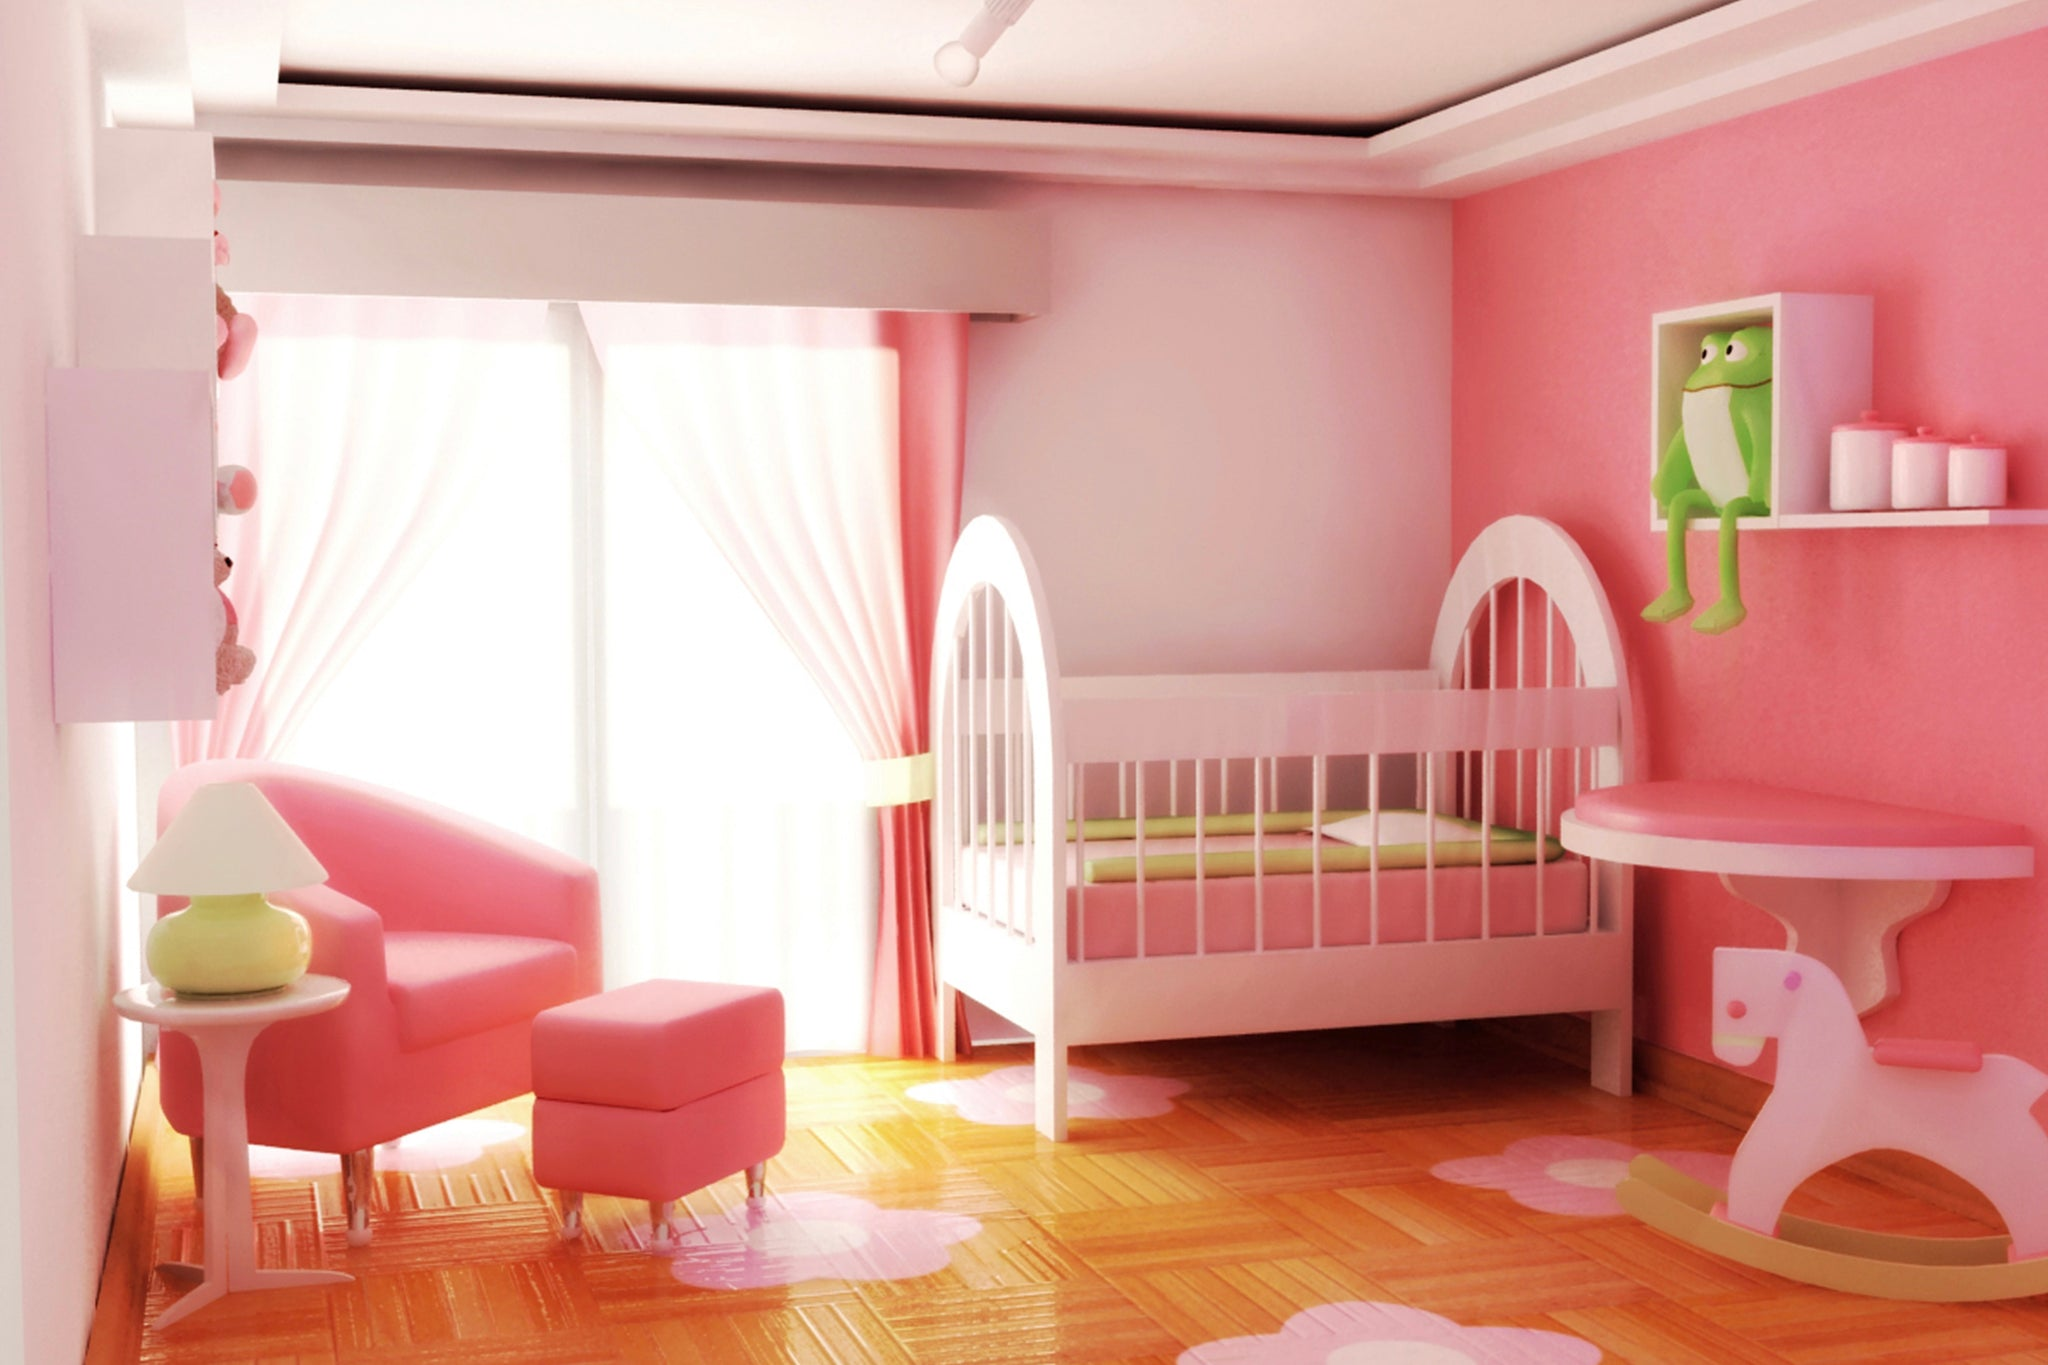 15 Ideas for Designing Your Baby's Nursery